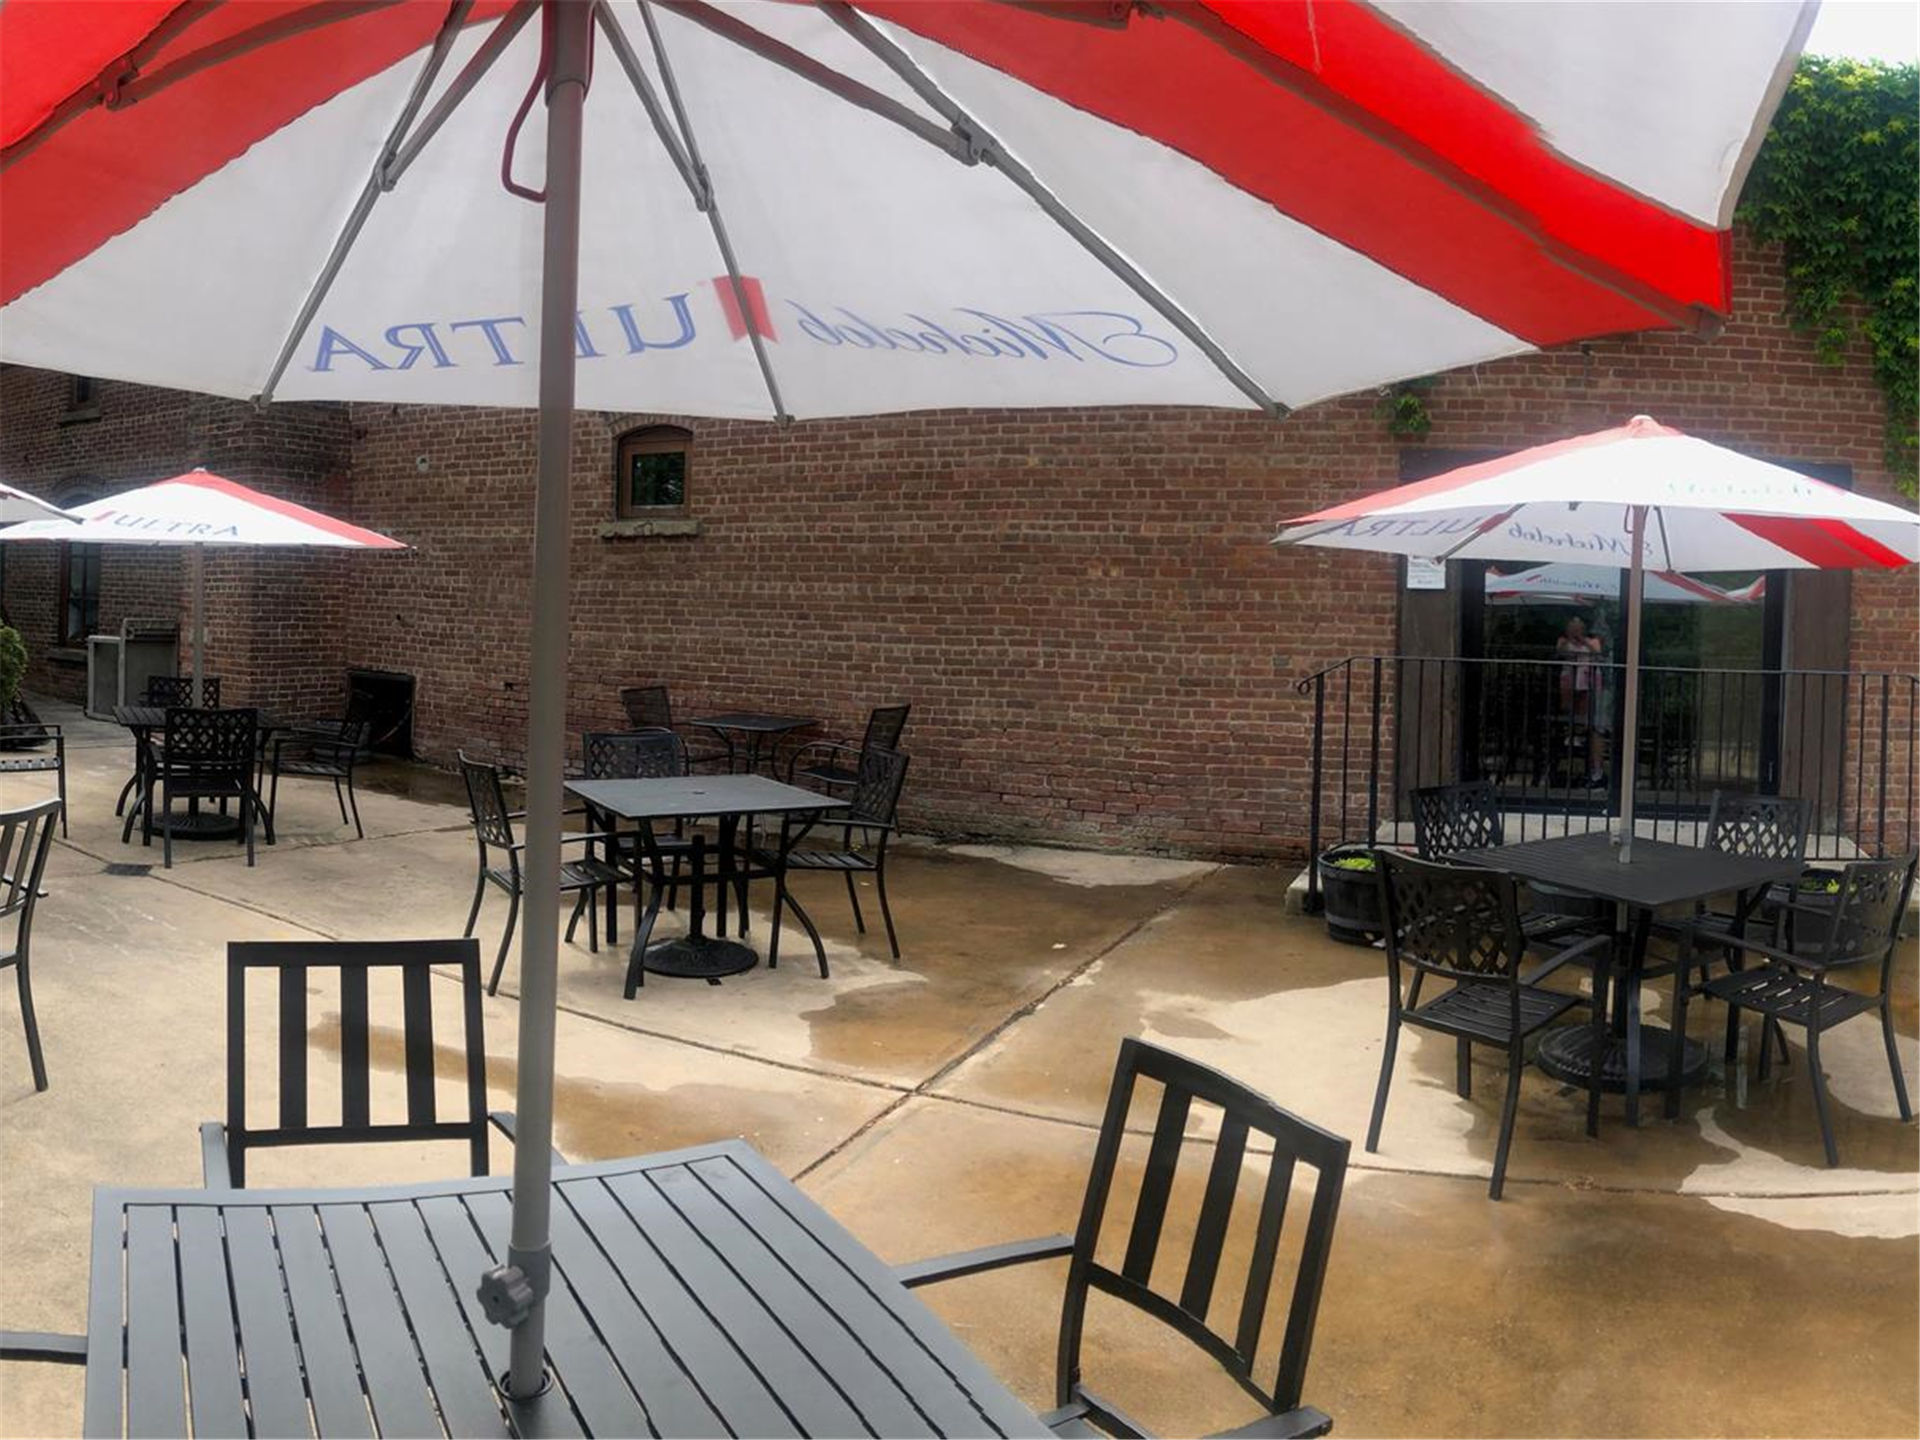 outside dining tables with umbrellas